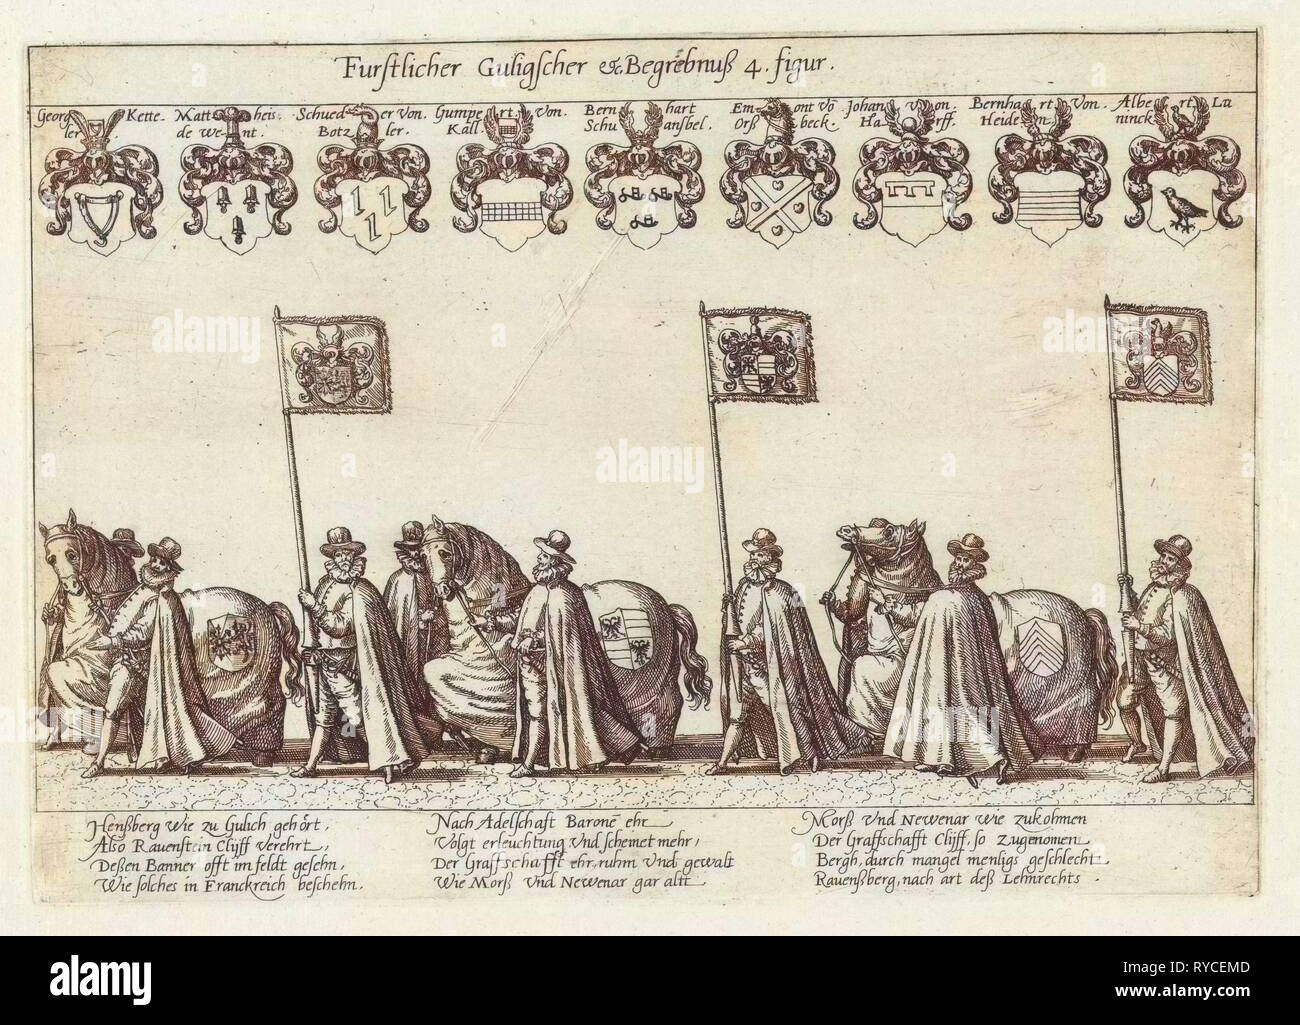 Funeral procession with horses and flag bearers, Anonymous, 1592 - Stock Image